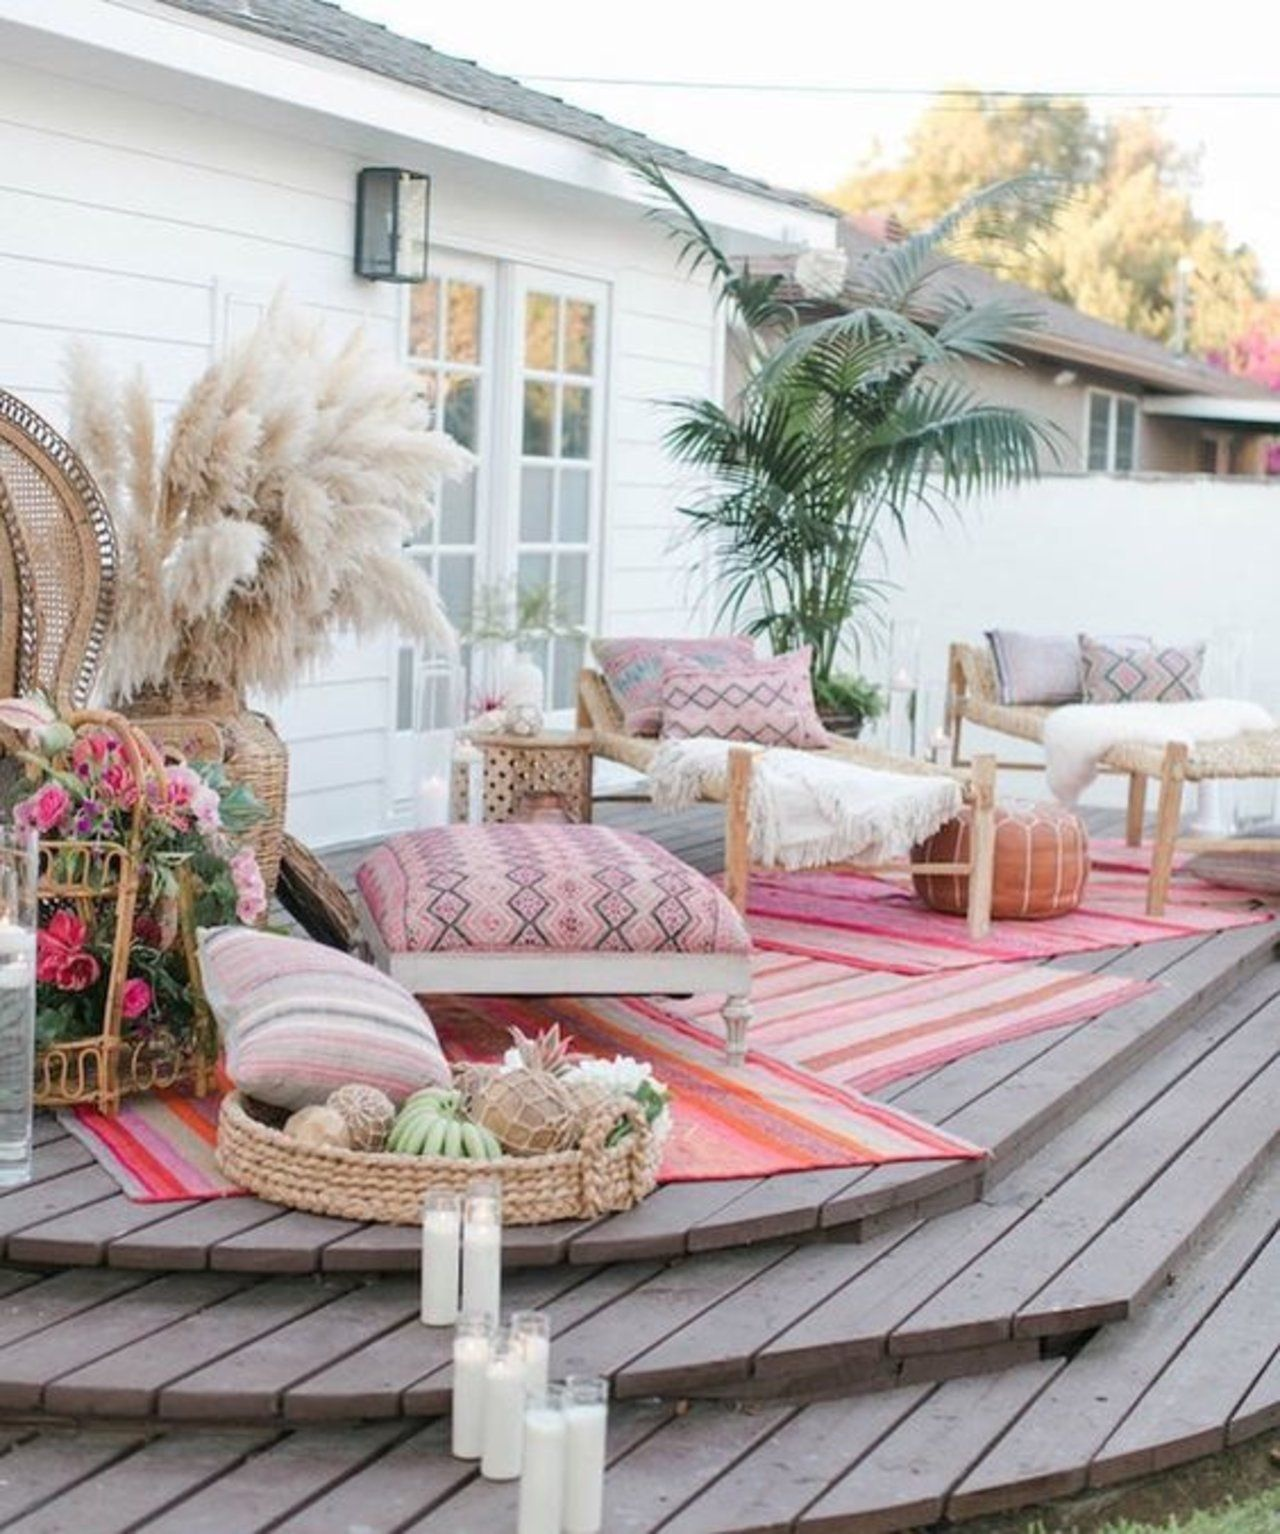 10 Outdoor Spaces That Have Us ficially Ready for Summer